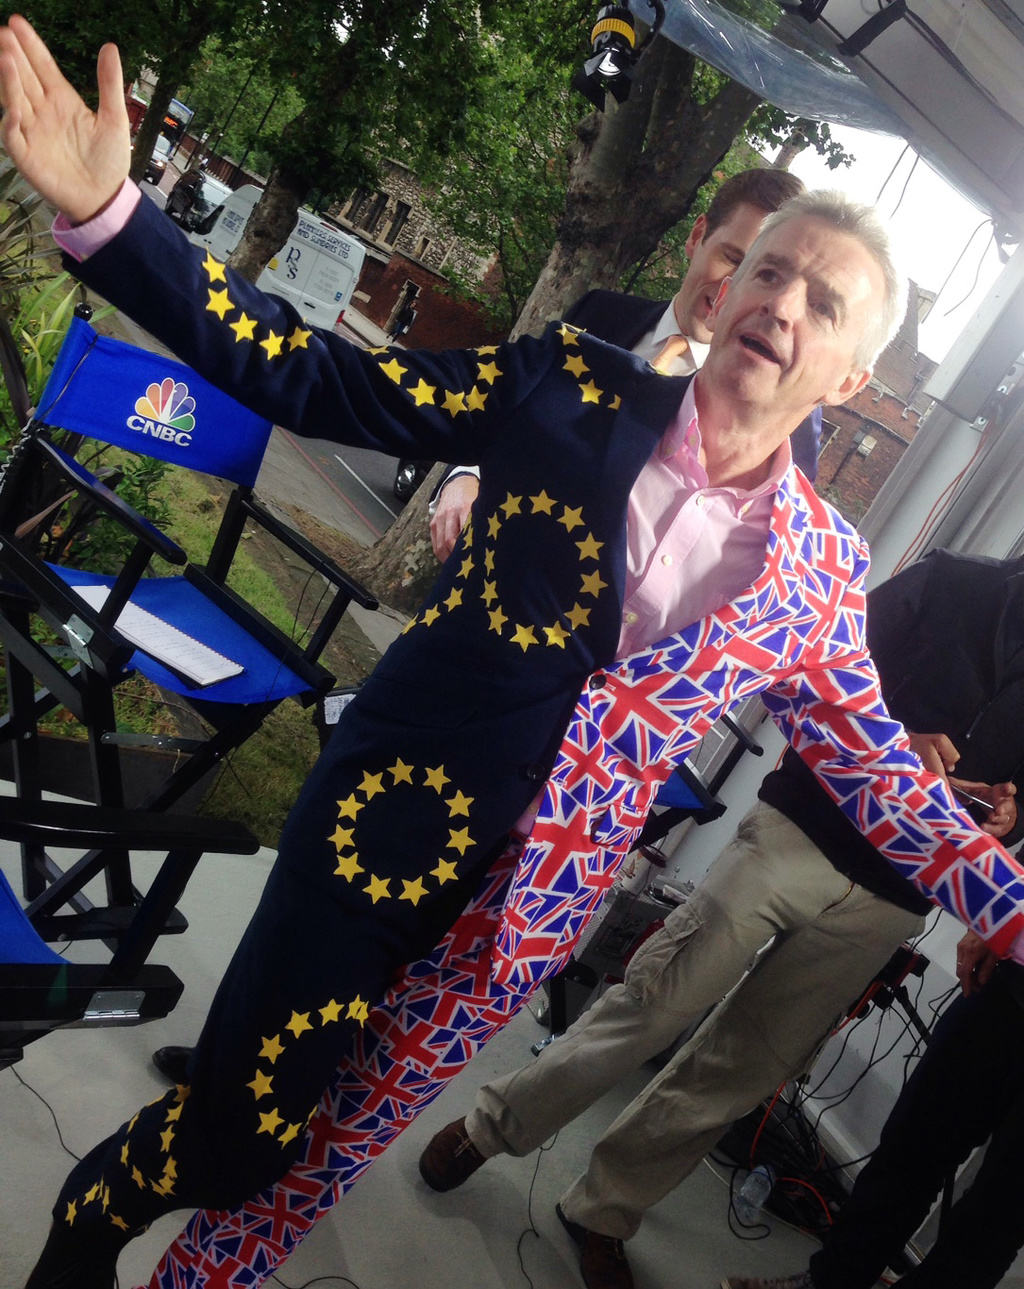 Micheal O'Leary shows off his opinion on the Brexit his way…